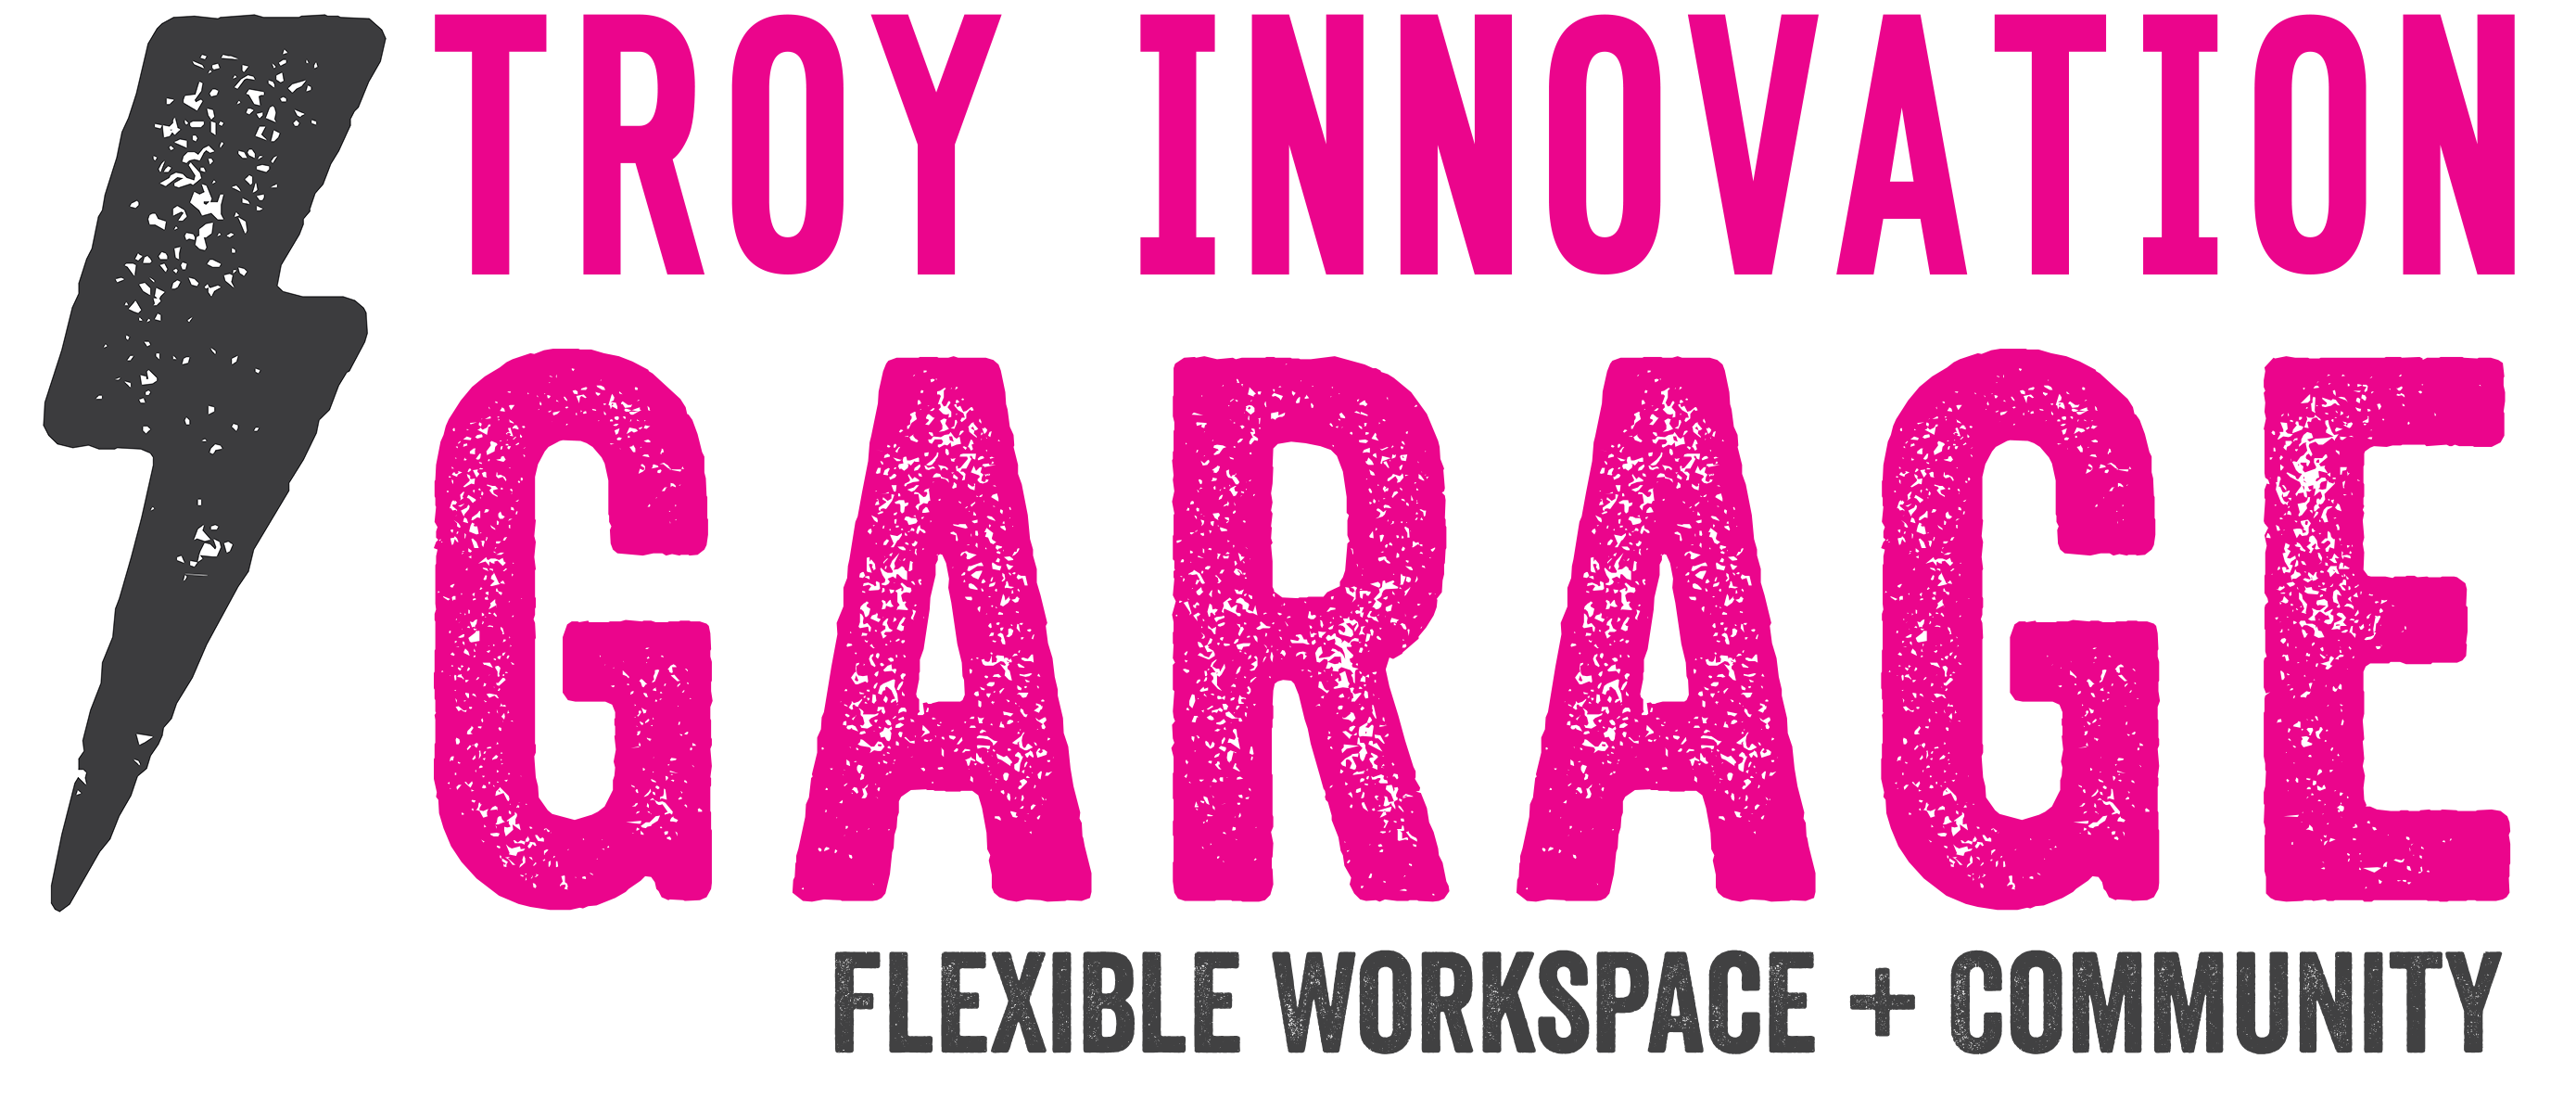 Troy Innovation Garage Logo